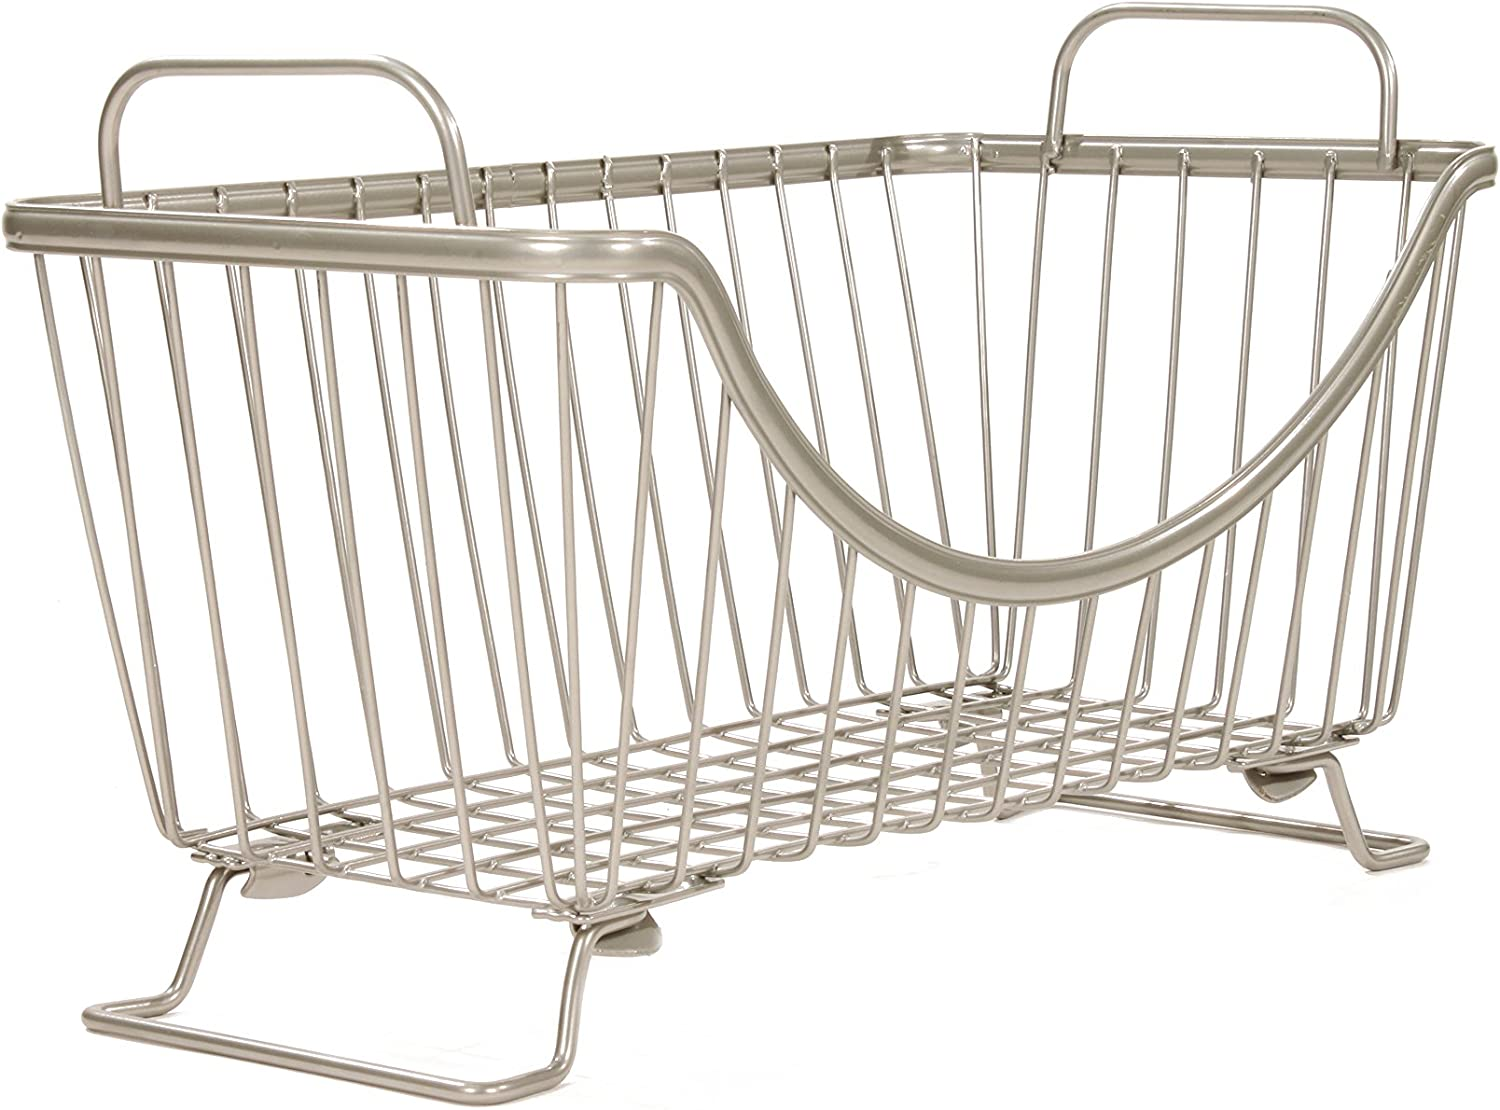 Spectrum Diversified Ashley Stackable Wire Basket With Raised Feet and Looped Handles, Modular Stacking Bin System for Kitchen Countertop & Desk Organization, Small